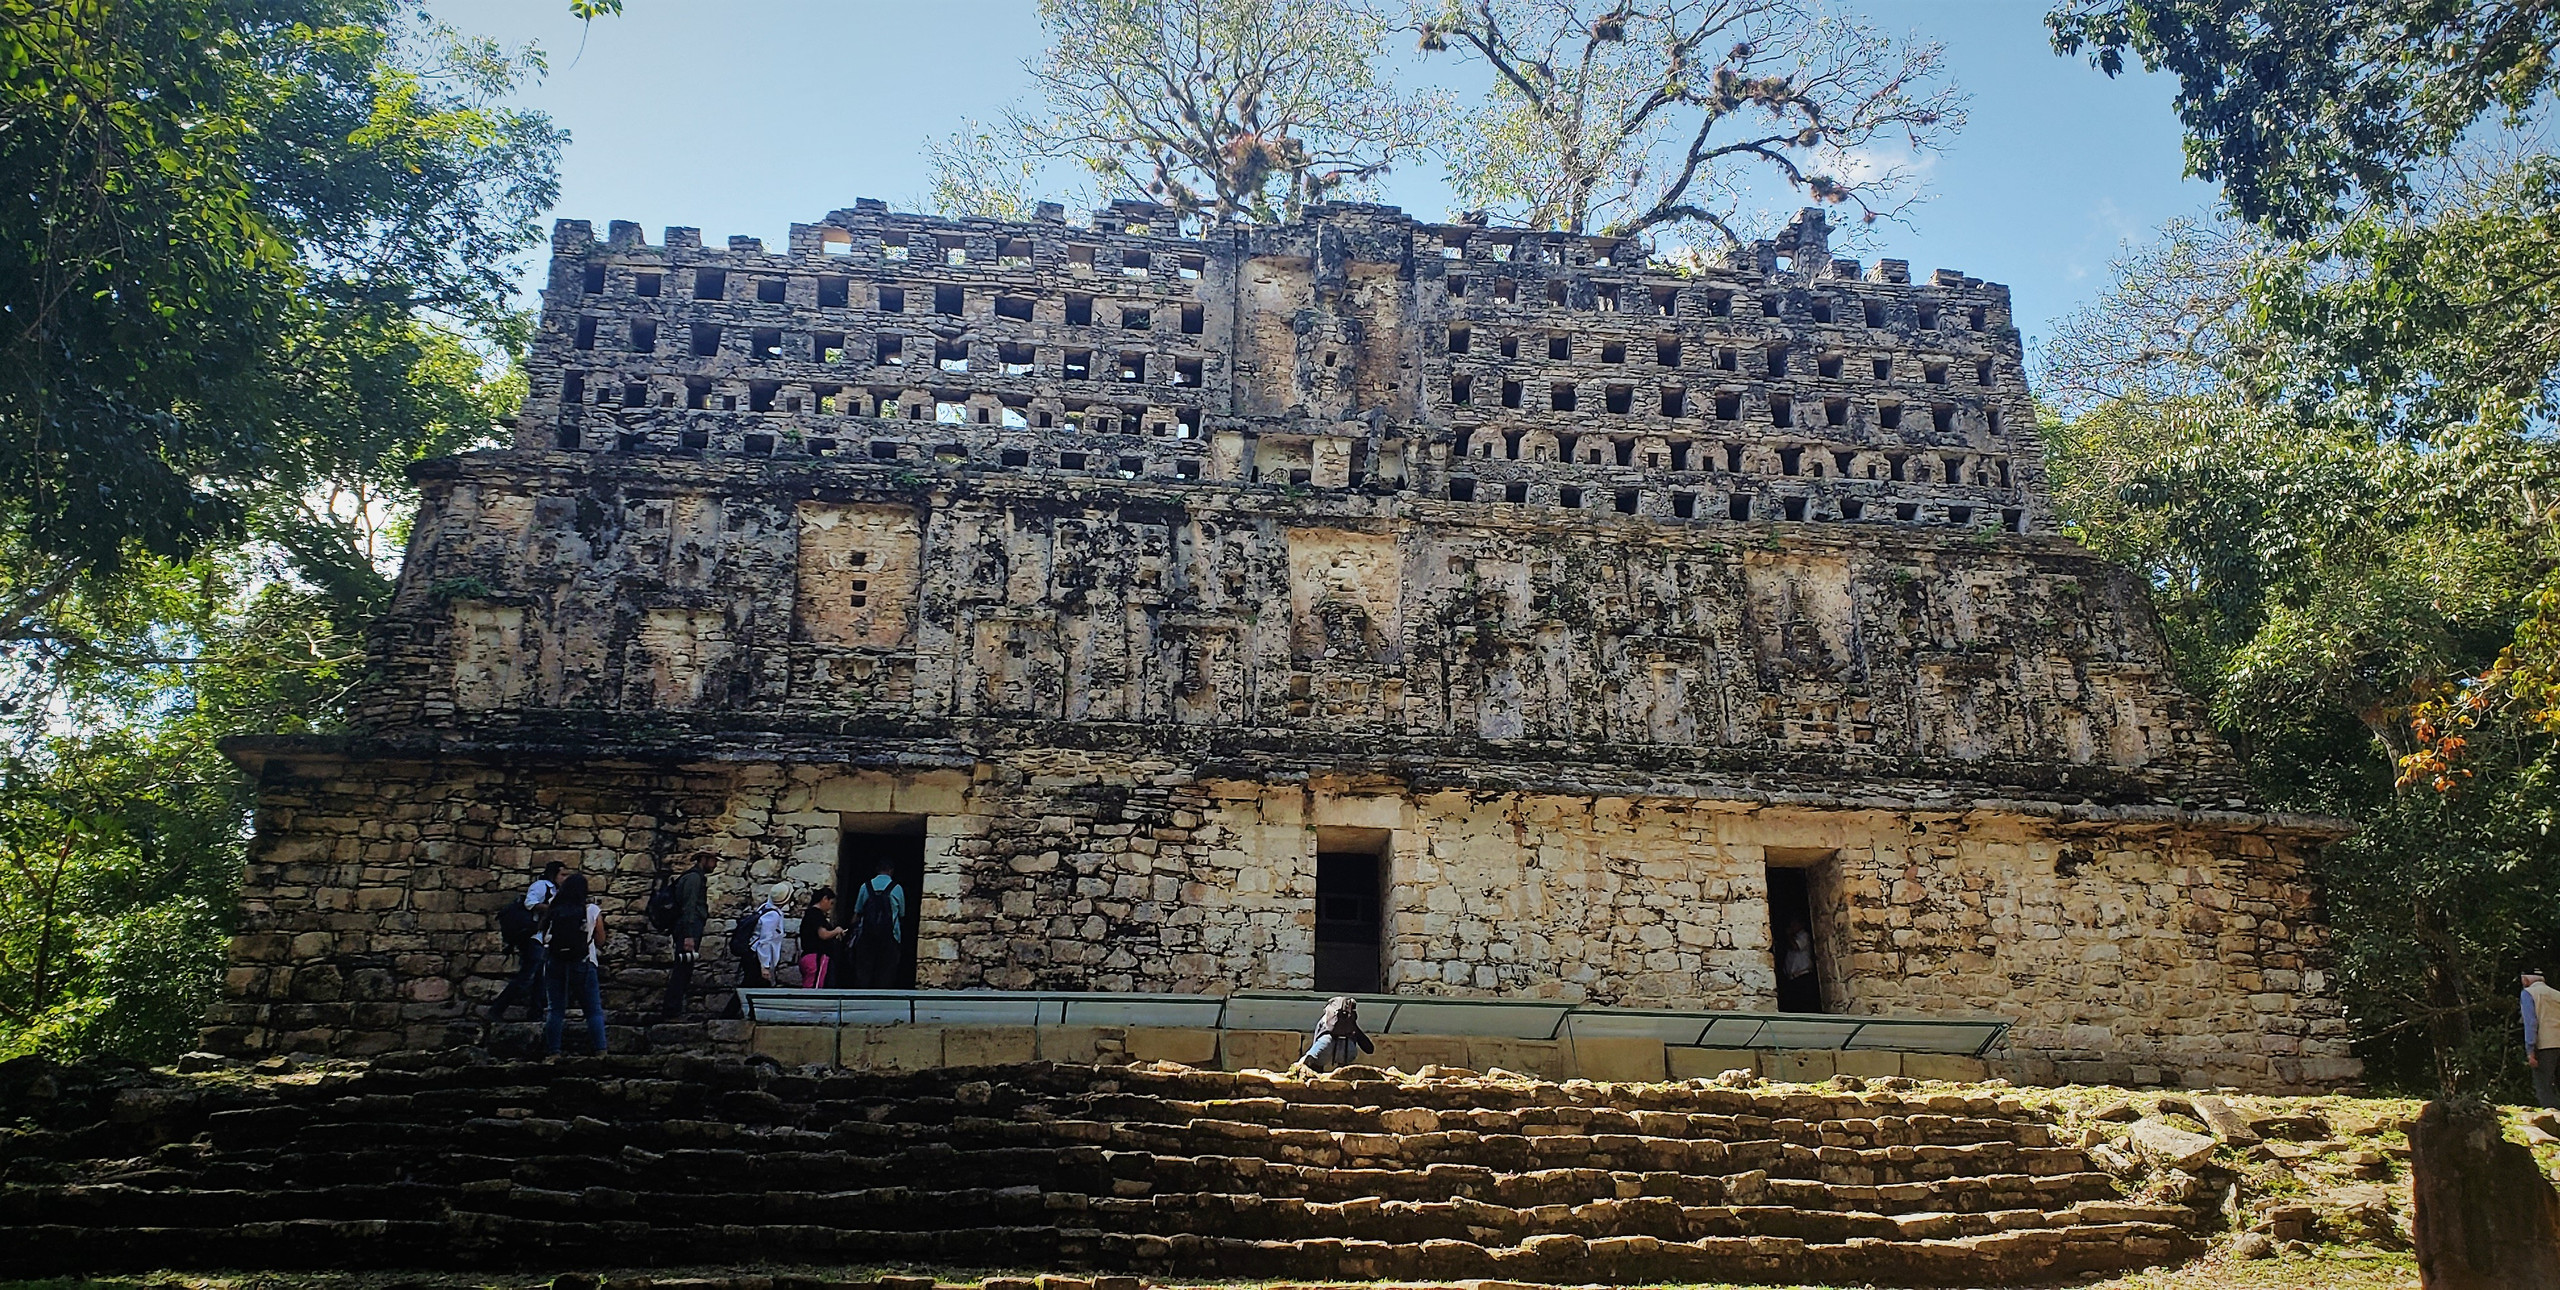 A temple at Yaxchilán - note the elaborate comb atop the structure